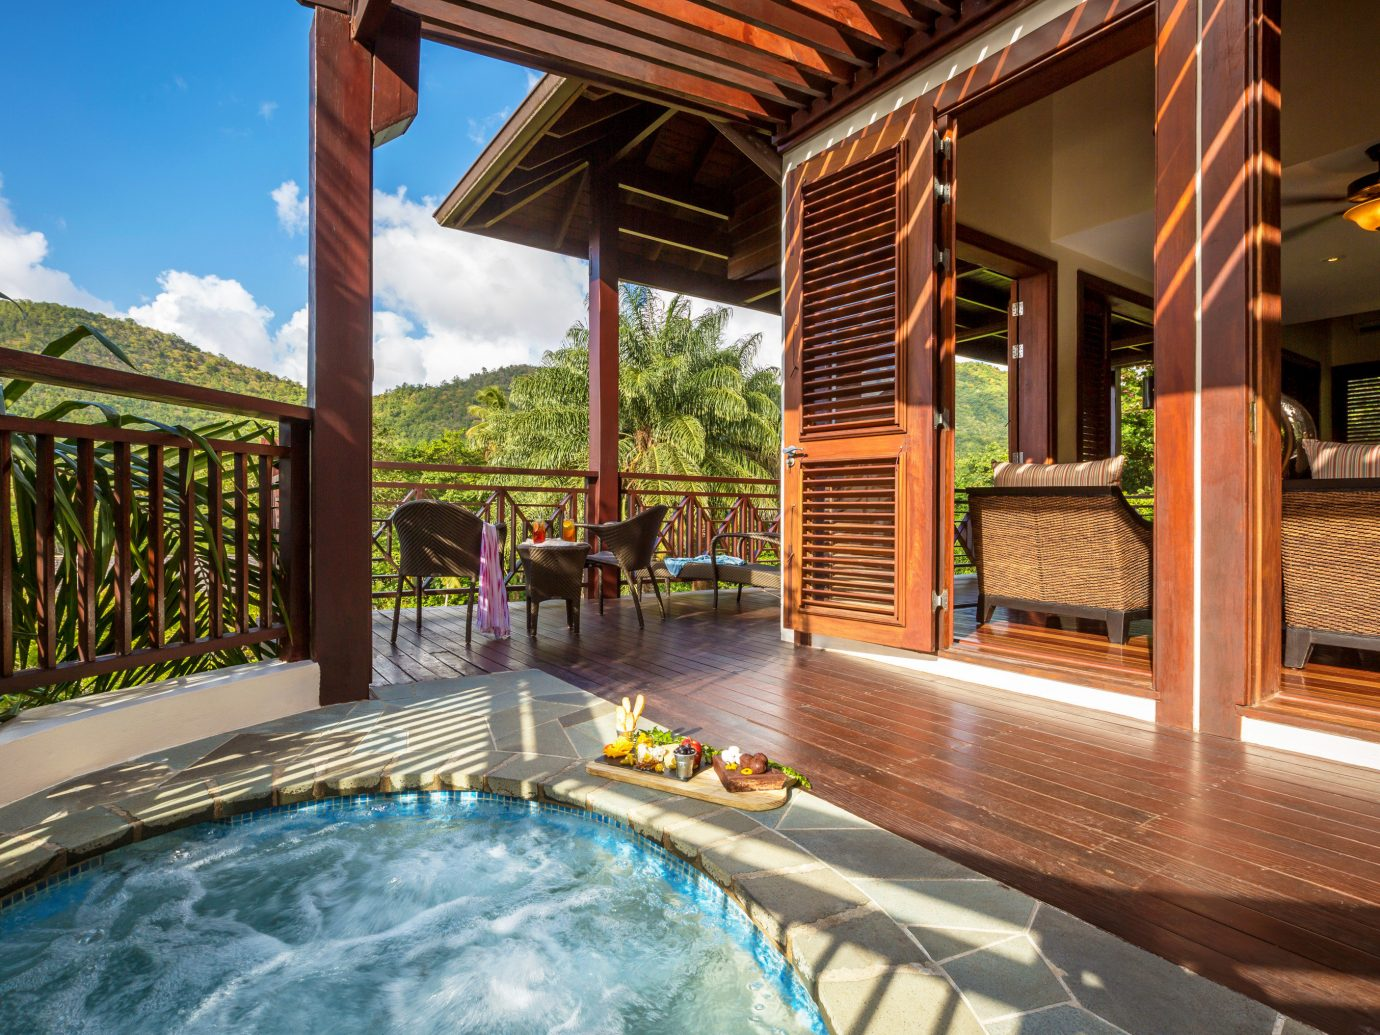 Hotels Luxury Travel outdoor building property Resort swimming pool leisure estate vacation bathtub Villa vessel real estate Pool home backyard eco hotel cottage furniture colonnade